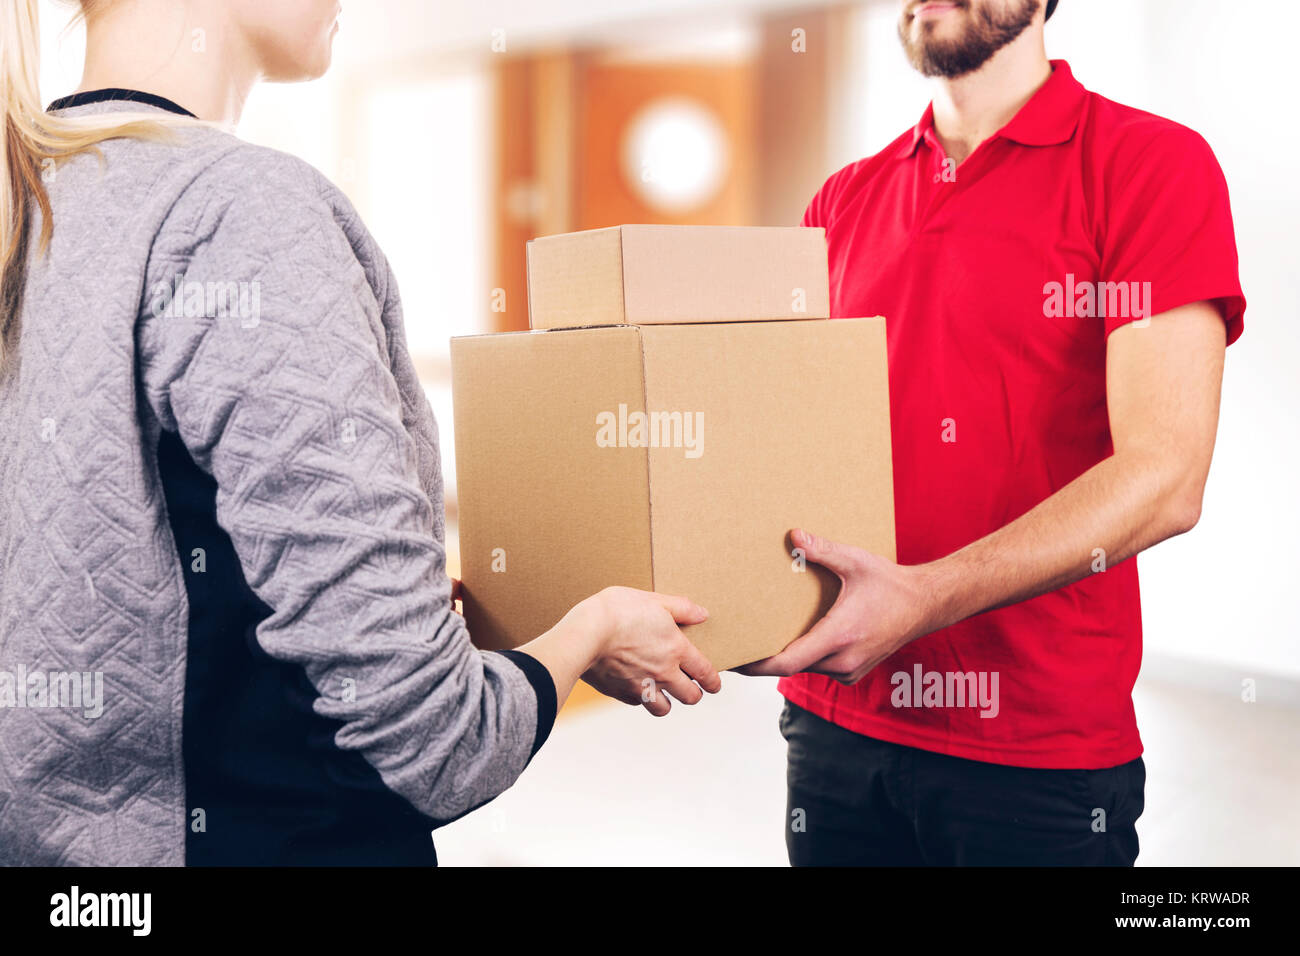 woman accepting a delivery of boxes from delivery service courier - Stock Image